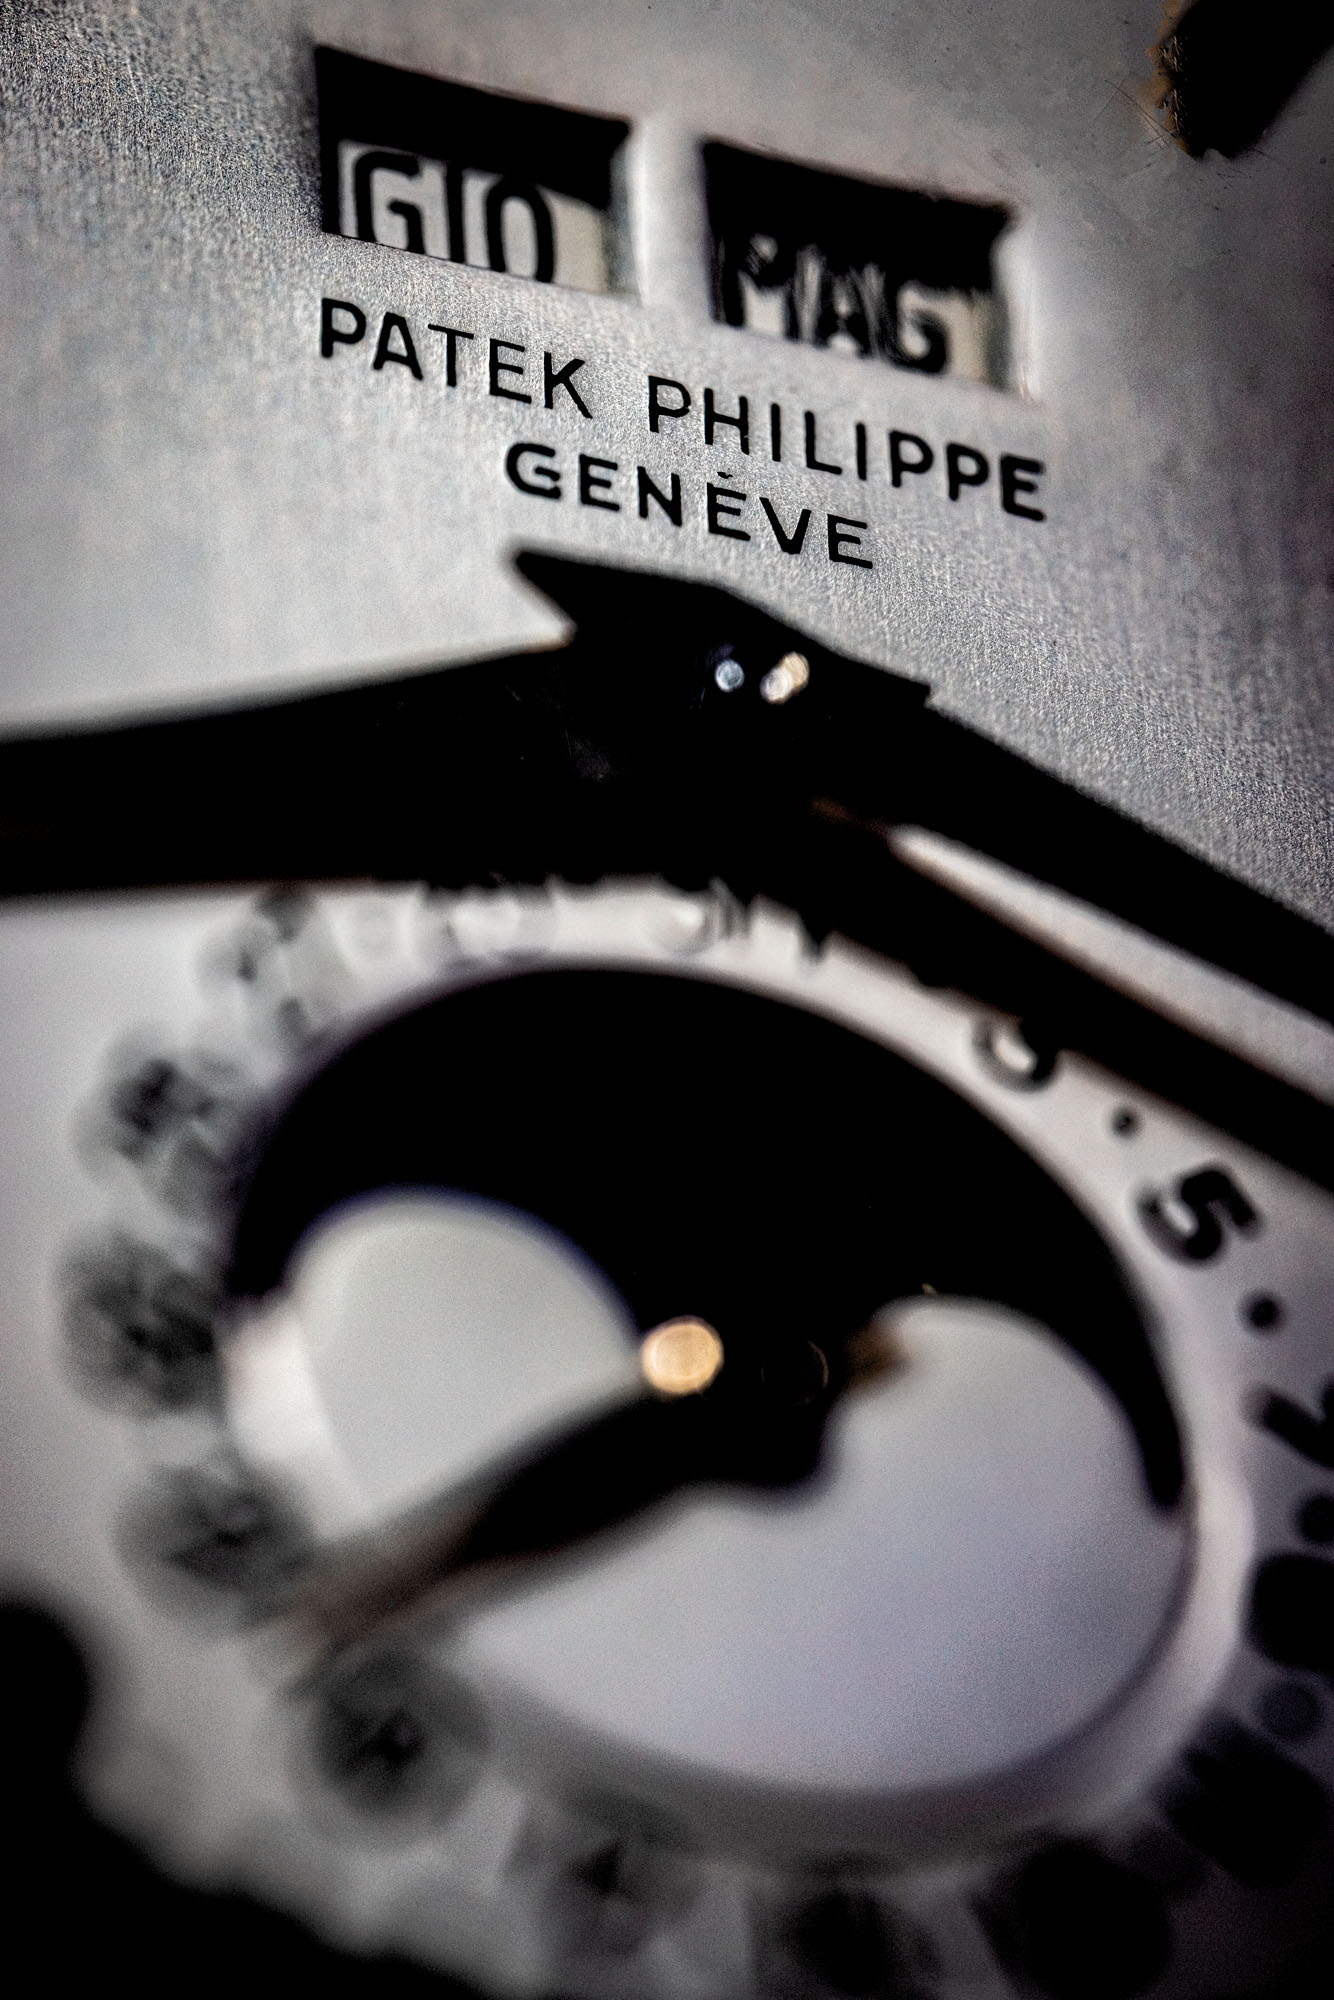 PATEK PHILIPPE. A FANTASTICALLY WELL PERSERVED 18K WHITE GOLD AUTOMATIC PERPETUAL CALENDAR WRISTWATCH WITH MOON PHASES